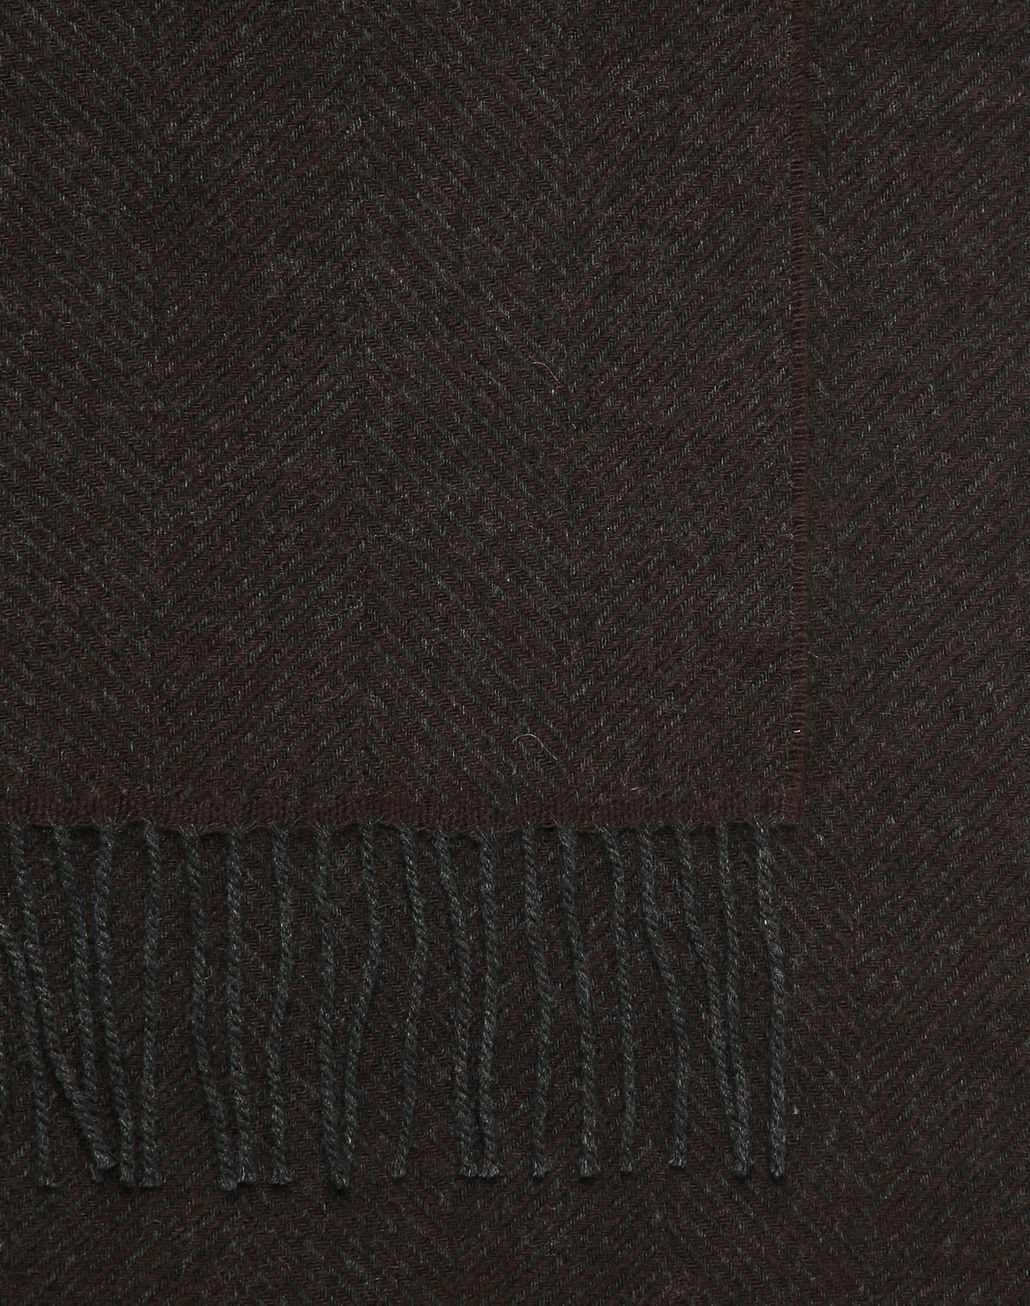 BRIONI Black and Brown Herringbone Scarf Foulards & Scarves Man d